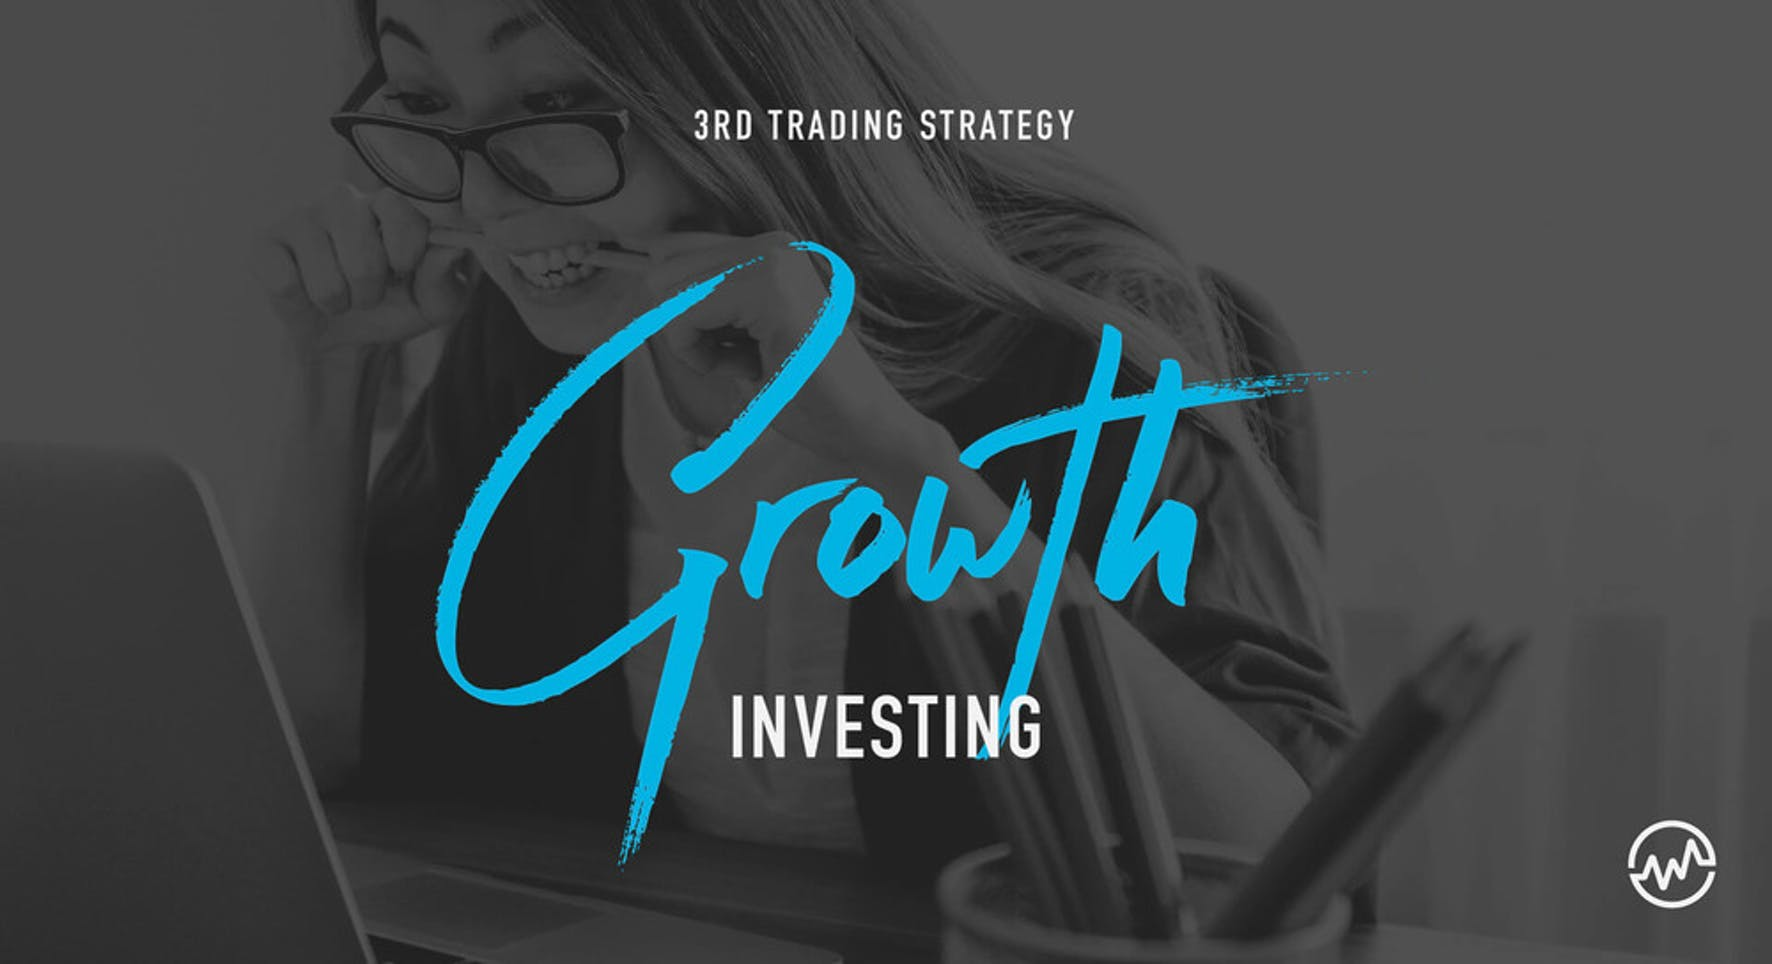 Learning the investing strategy growth investing on a laptop computer